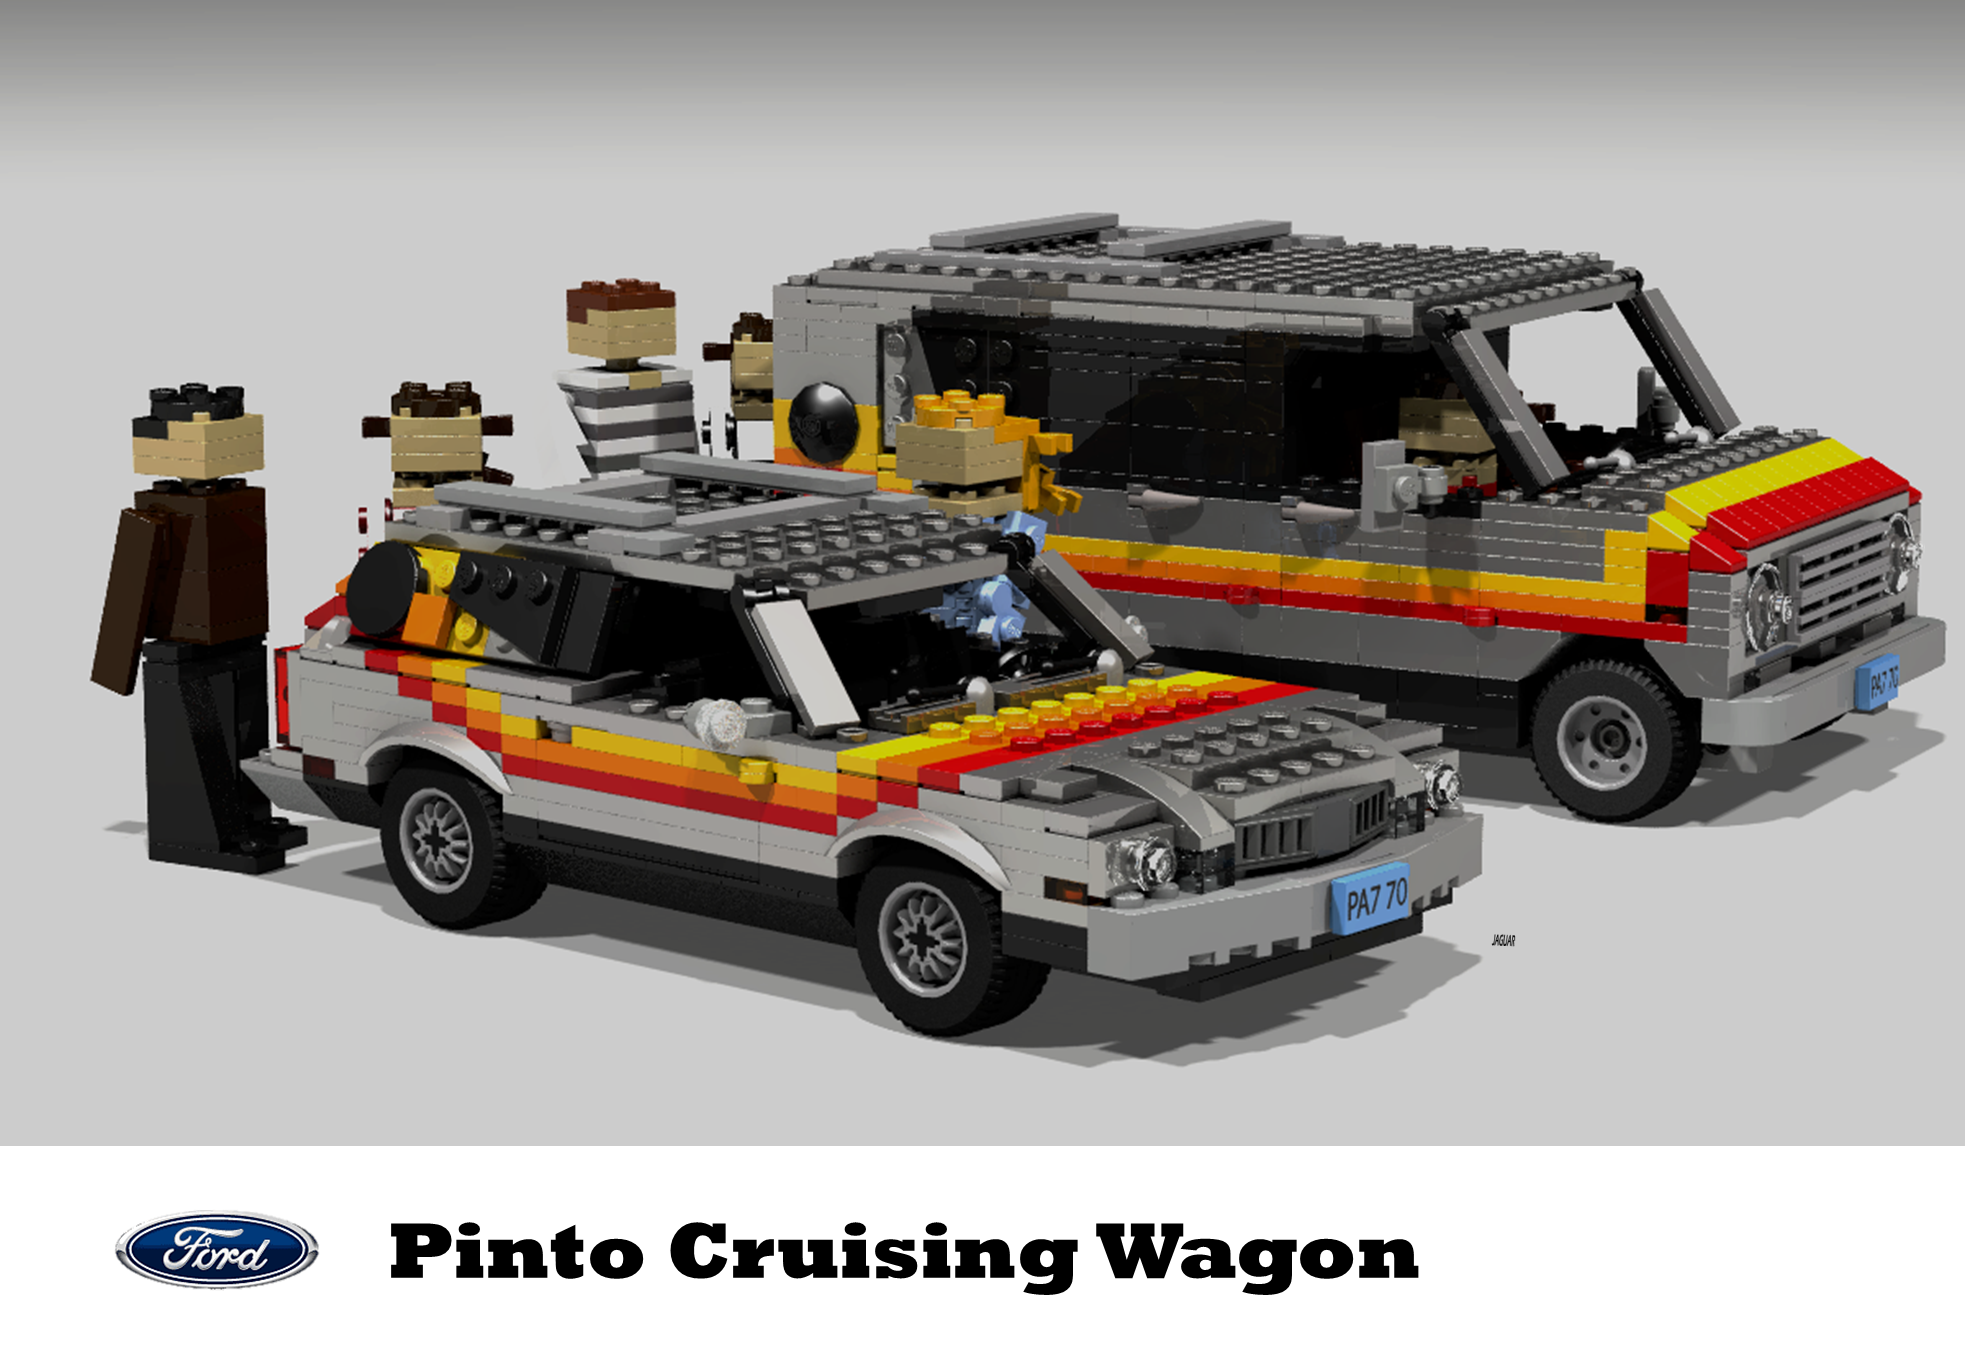 ford_pinto_cruising_wagon_07.png